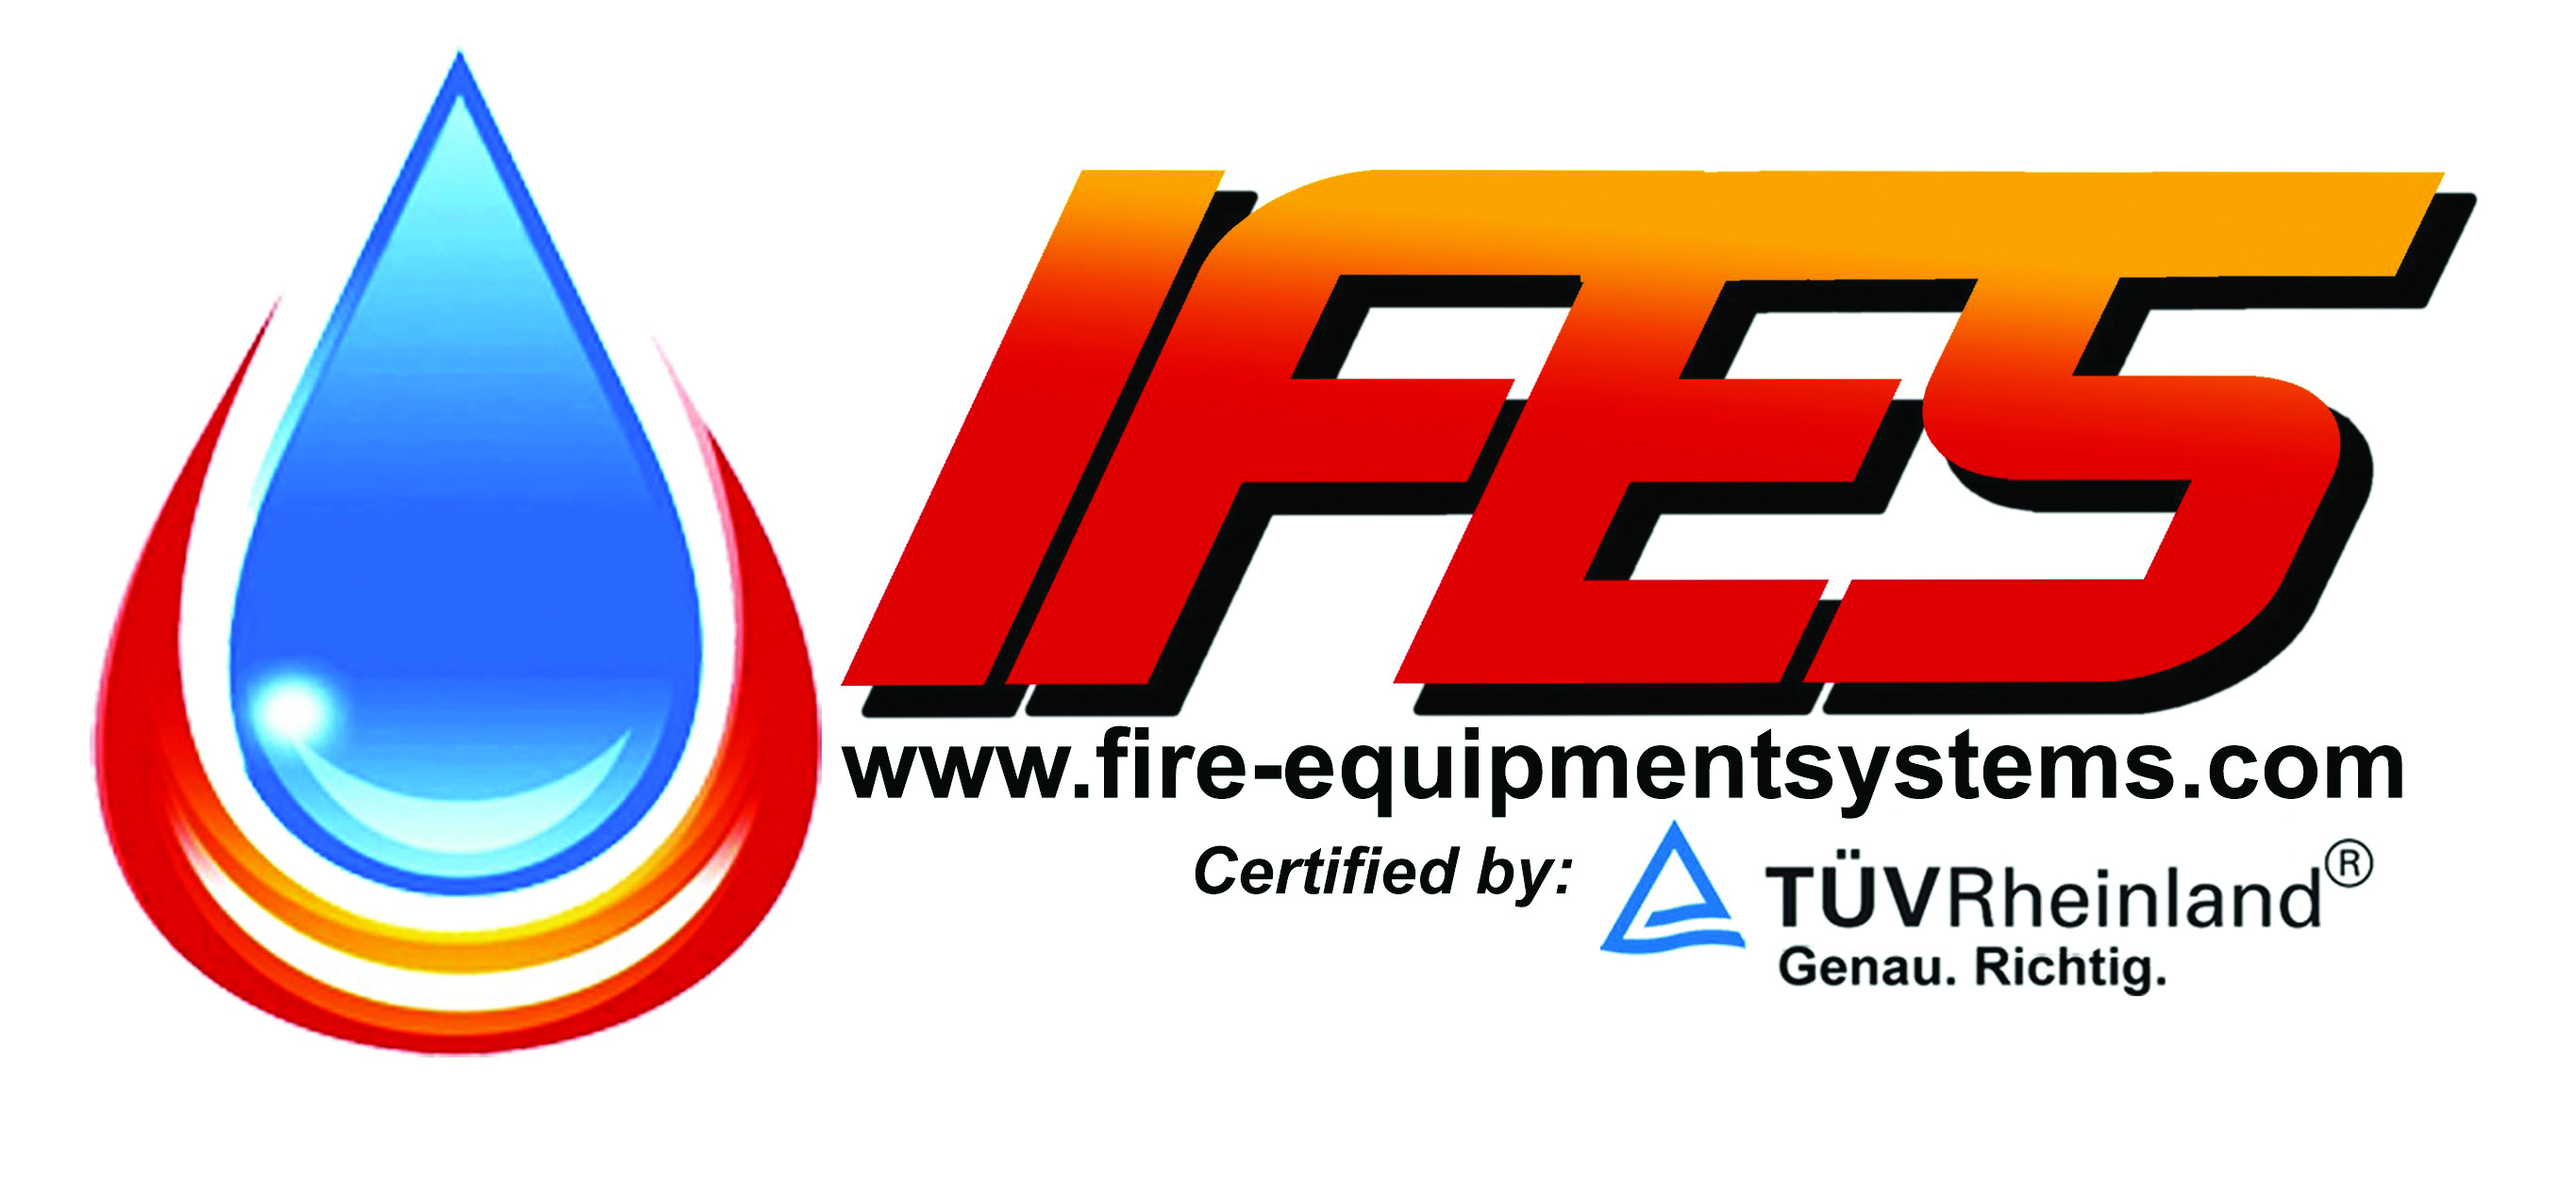 IFES Mobile Fire Suppression Systems